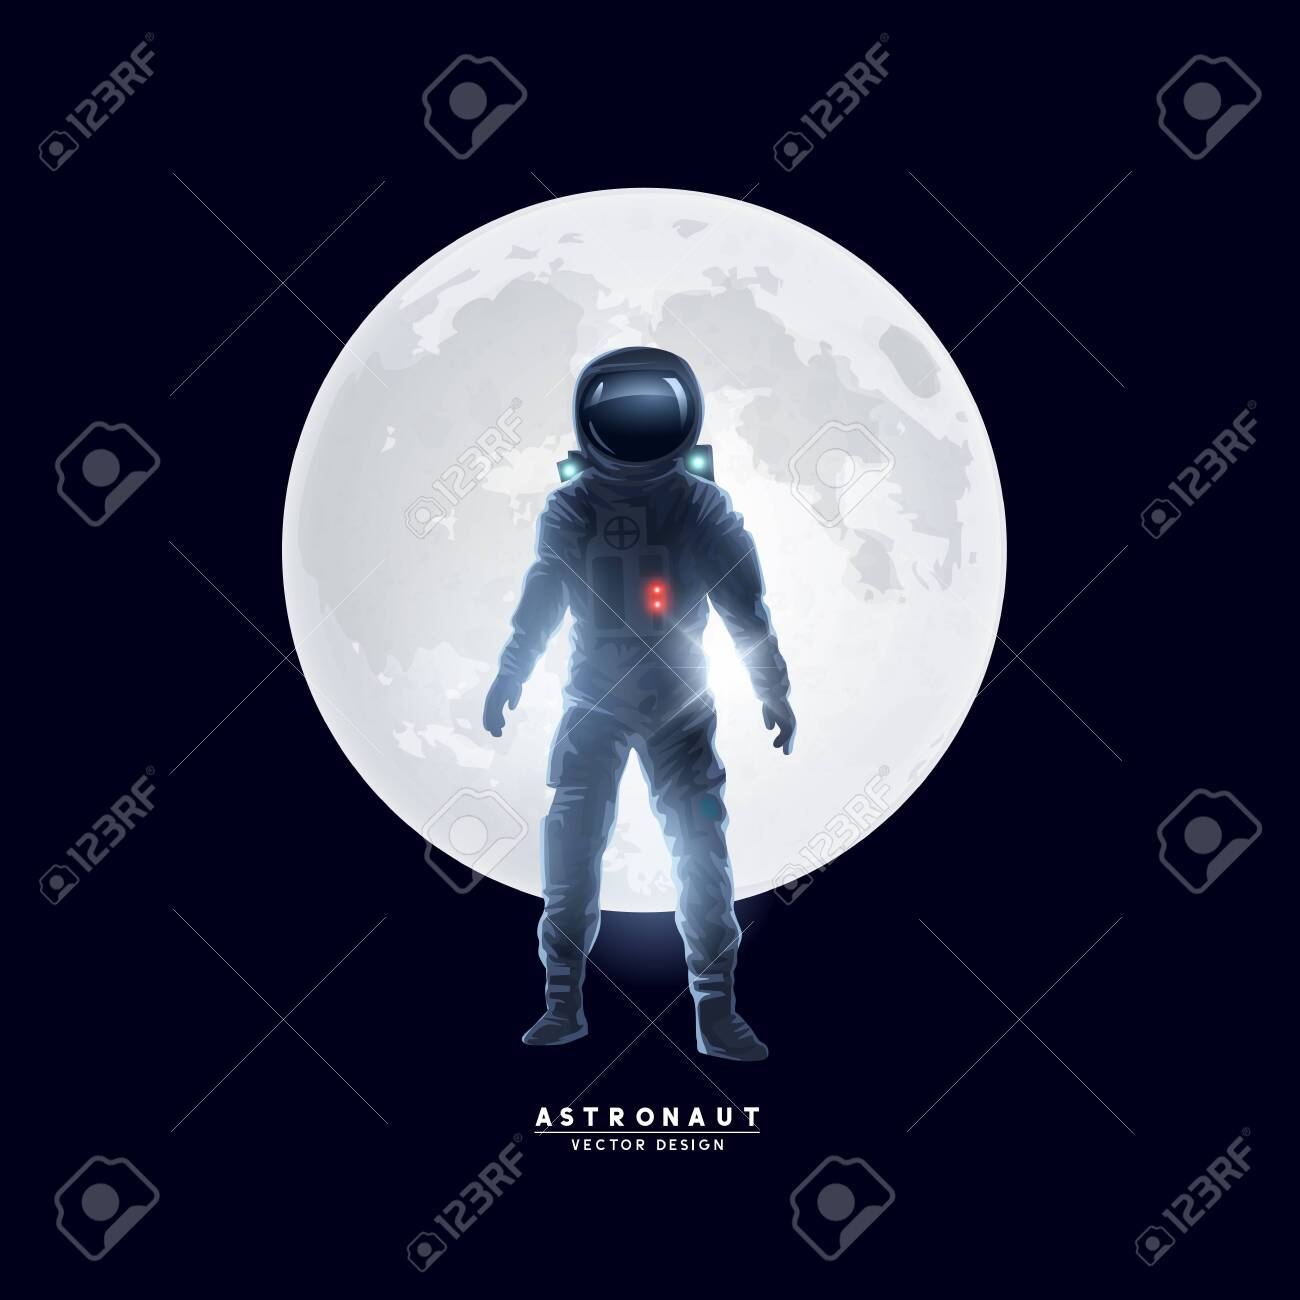 An astronaut spaceman stood in front of the moon. Vector illustration. - 124294974